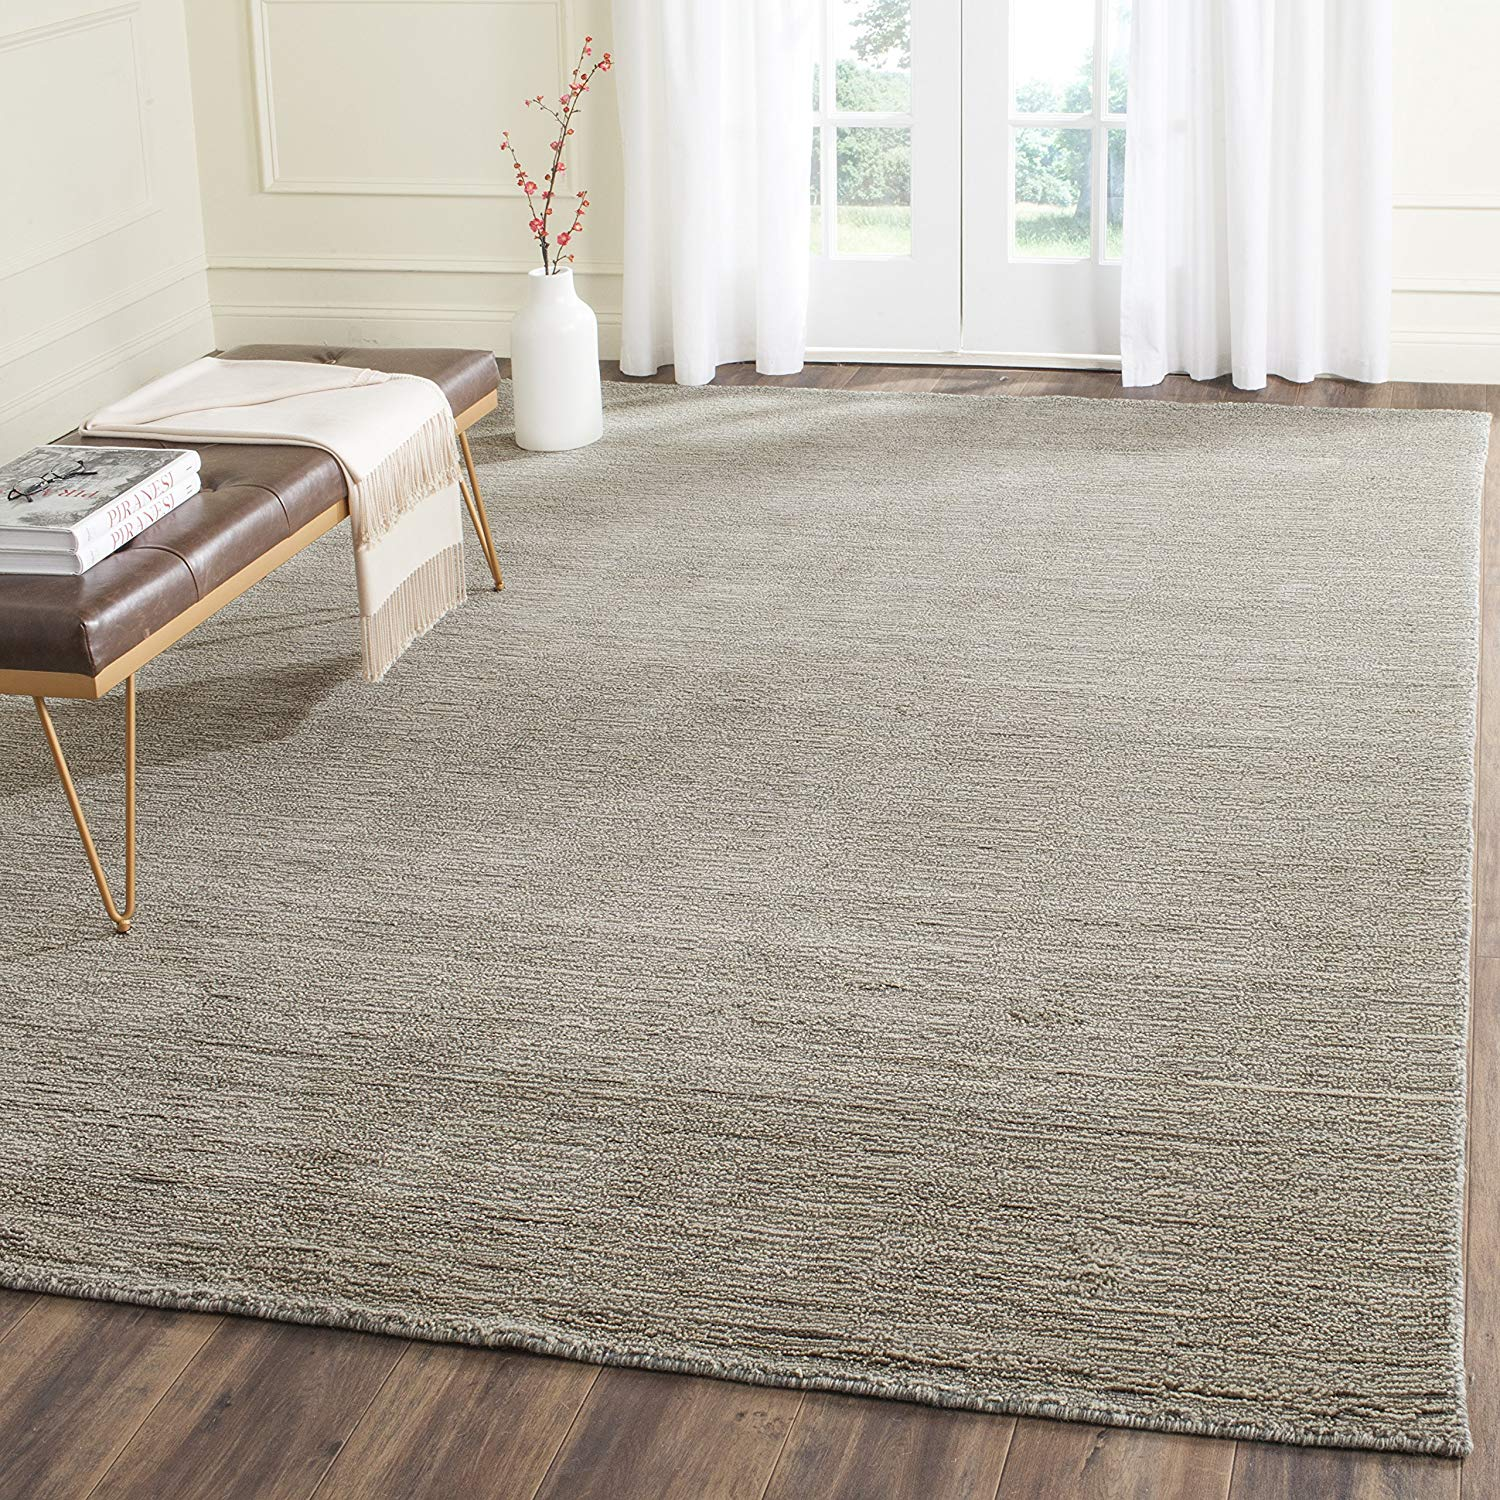 wool area rugs amazon.com: safavieh himalaya collection him311d handmade grey premium wool  area KEQQMRT